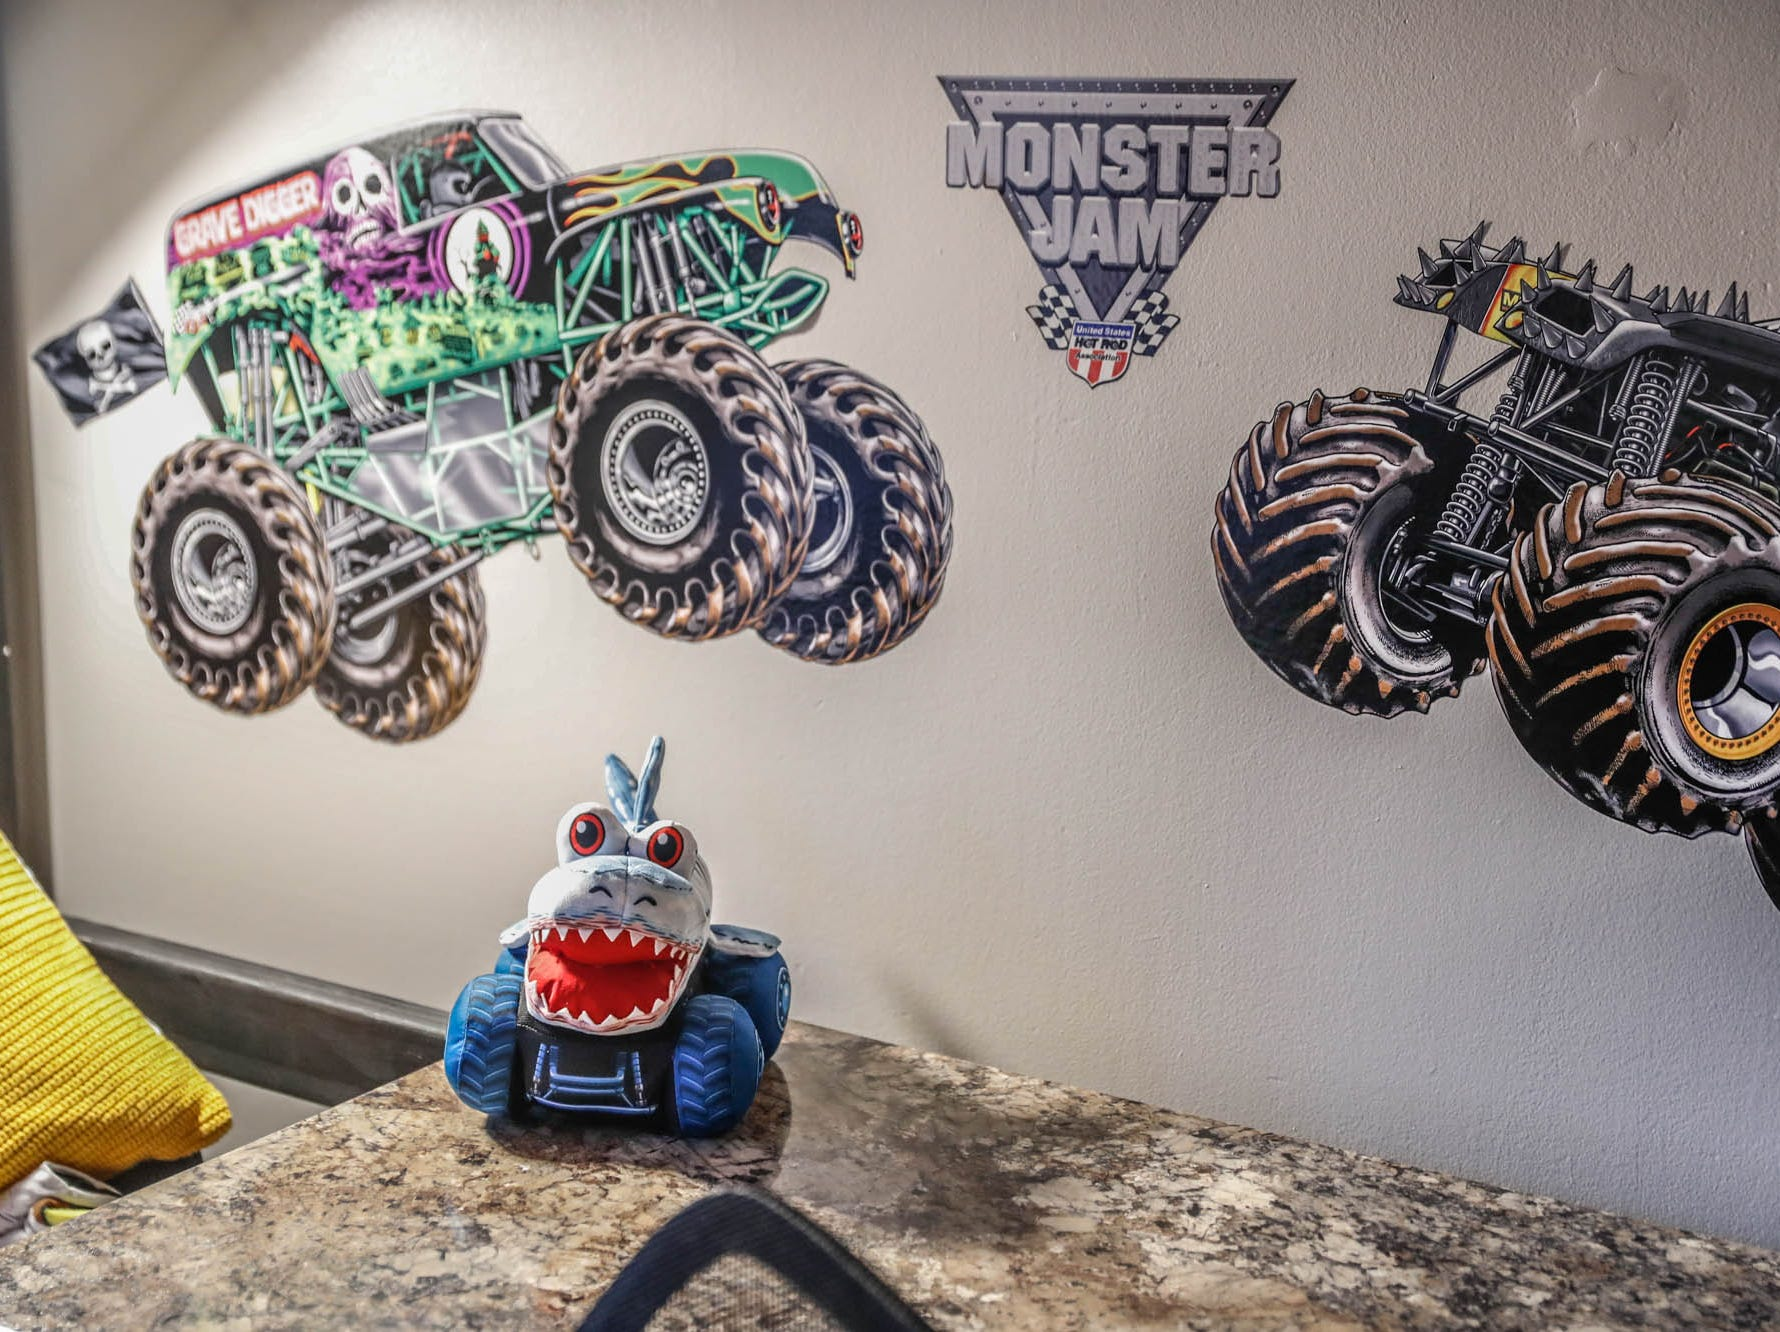 Monster Jam Fat Heads cover the walks in the newly remodeled bedroom of St. Barnabas Catholic School fourth grader, James Egold, who just completed chemo therapy, at Egold's south side home on Thursday, Feb. 7, 2019. The remodel was thanks to a team up by Monster Jam, Love Your Melon, and Home Depot.